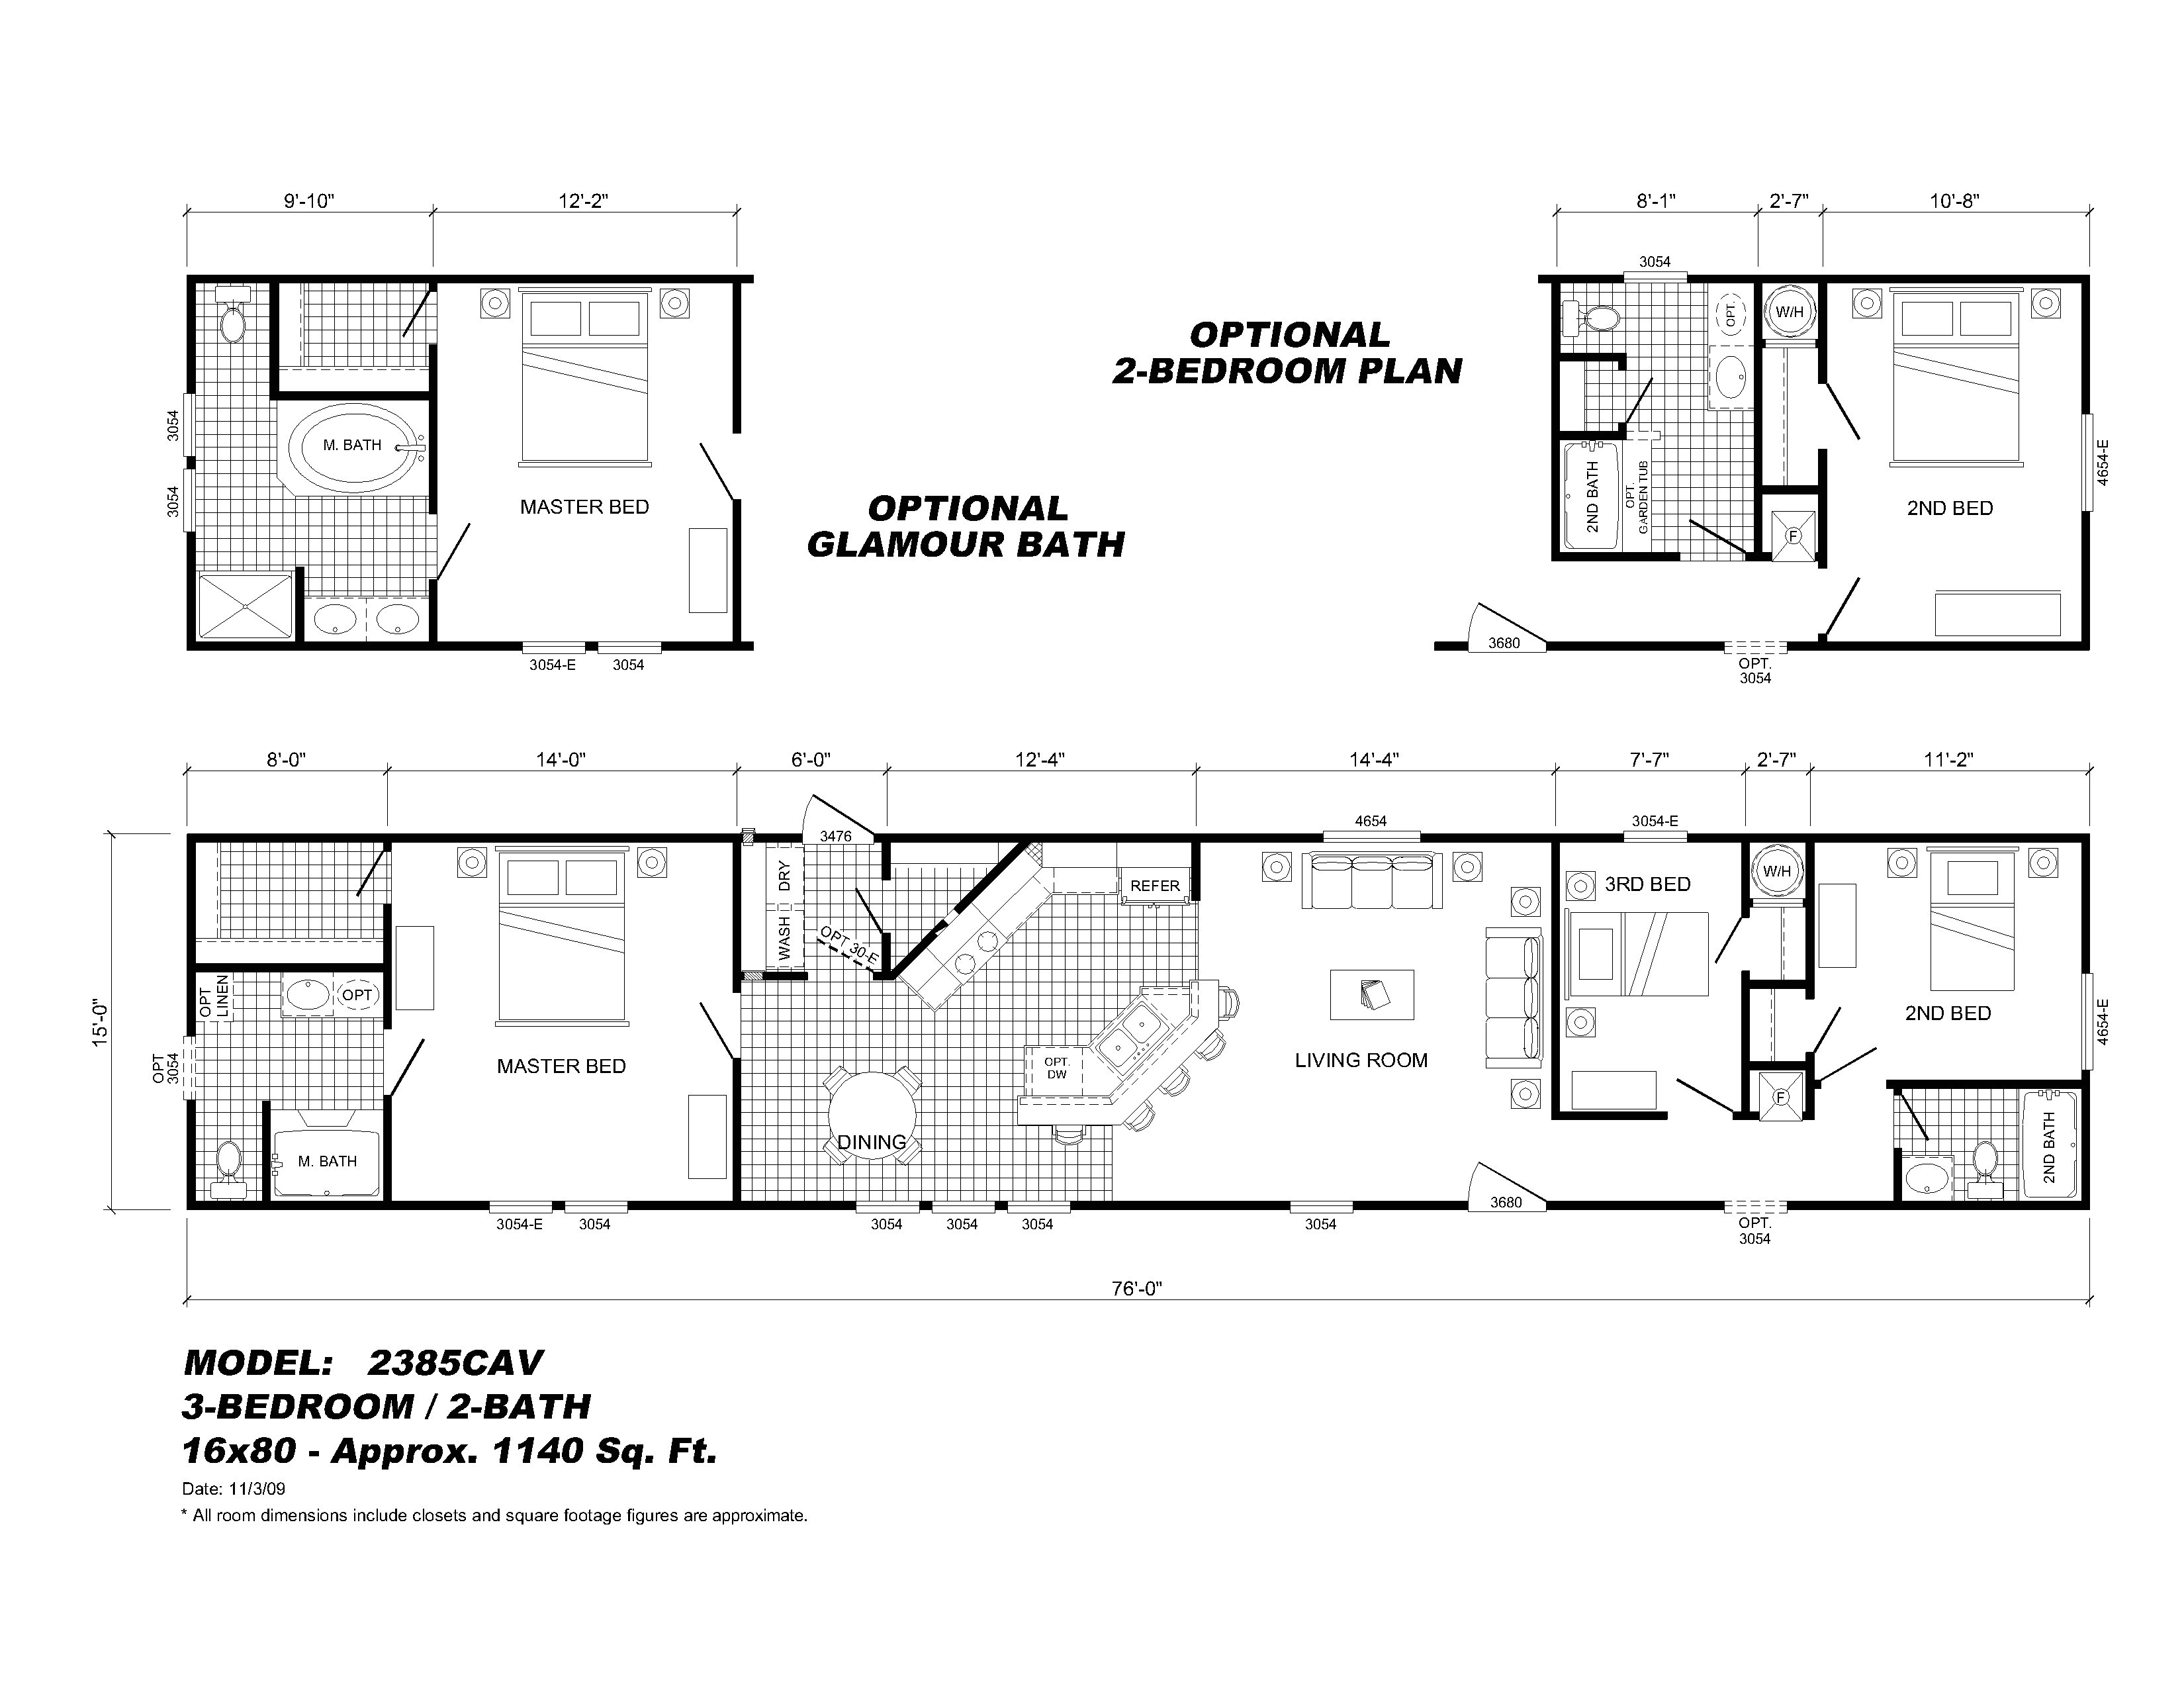 1999 Redman Mobile Home Floor Plans 1999 Redman Mobile Home Floor Plans Best Of 16 80 Mobile